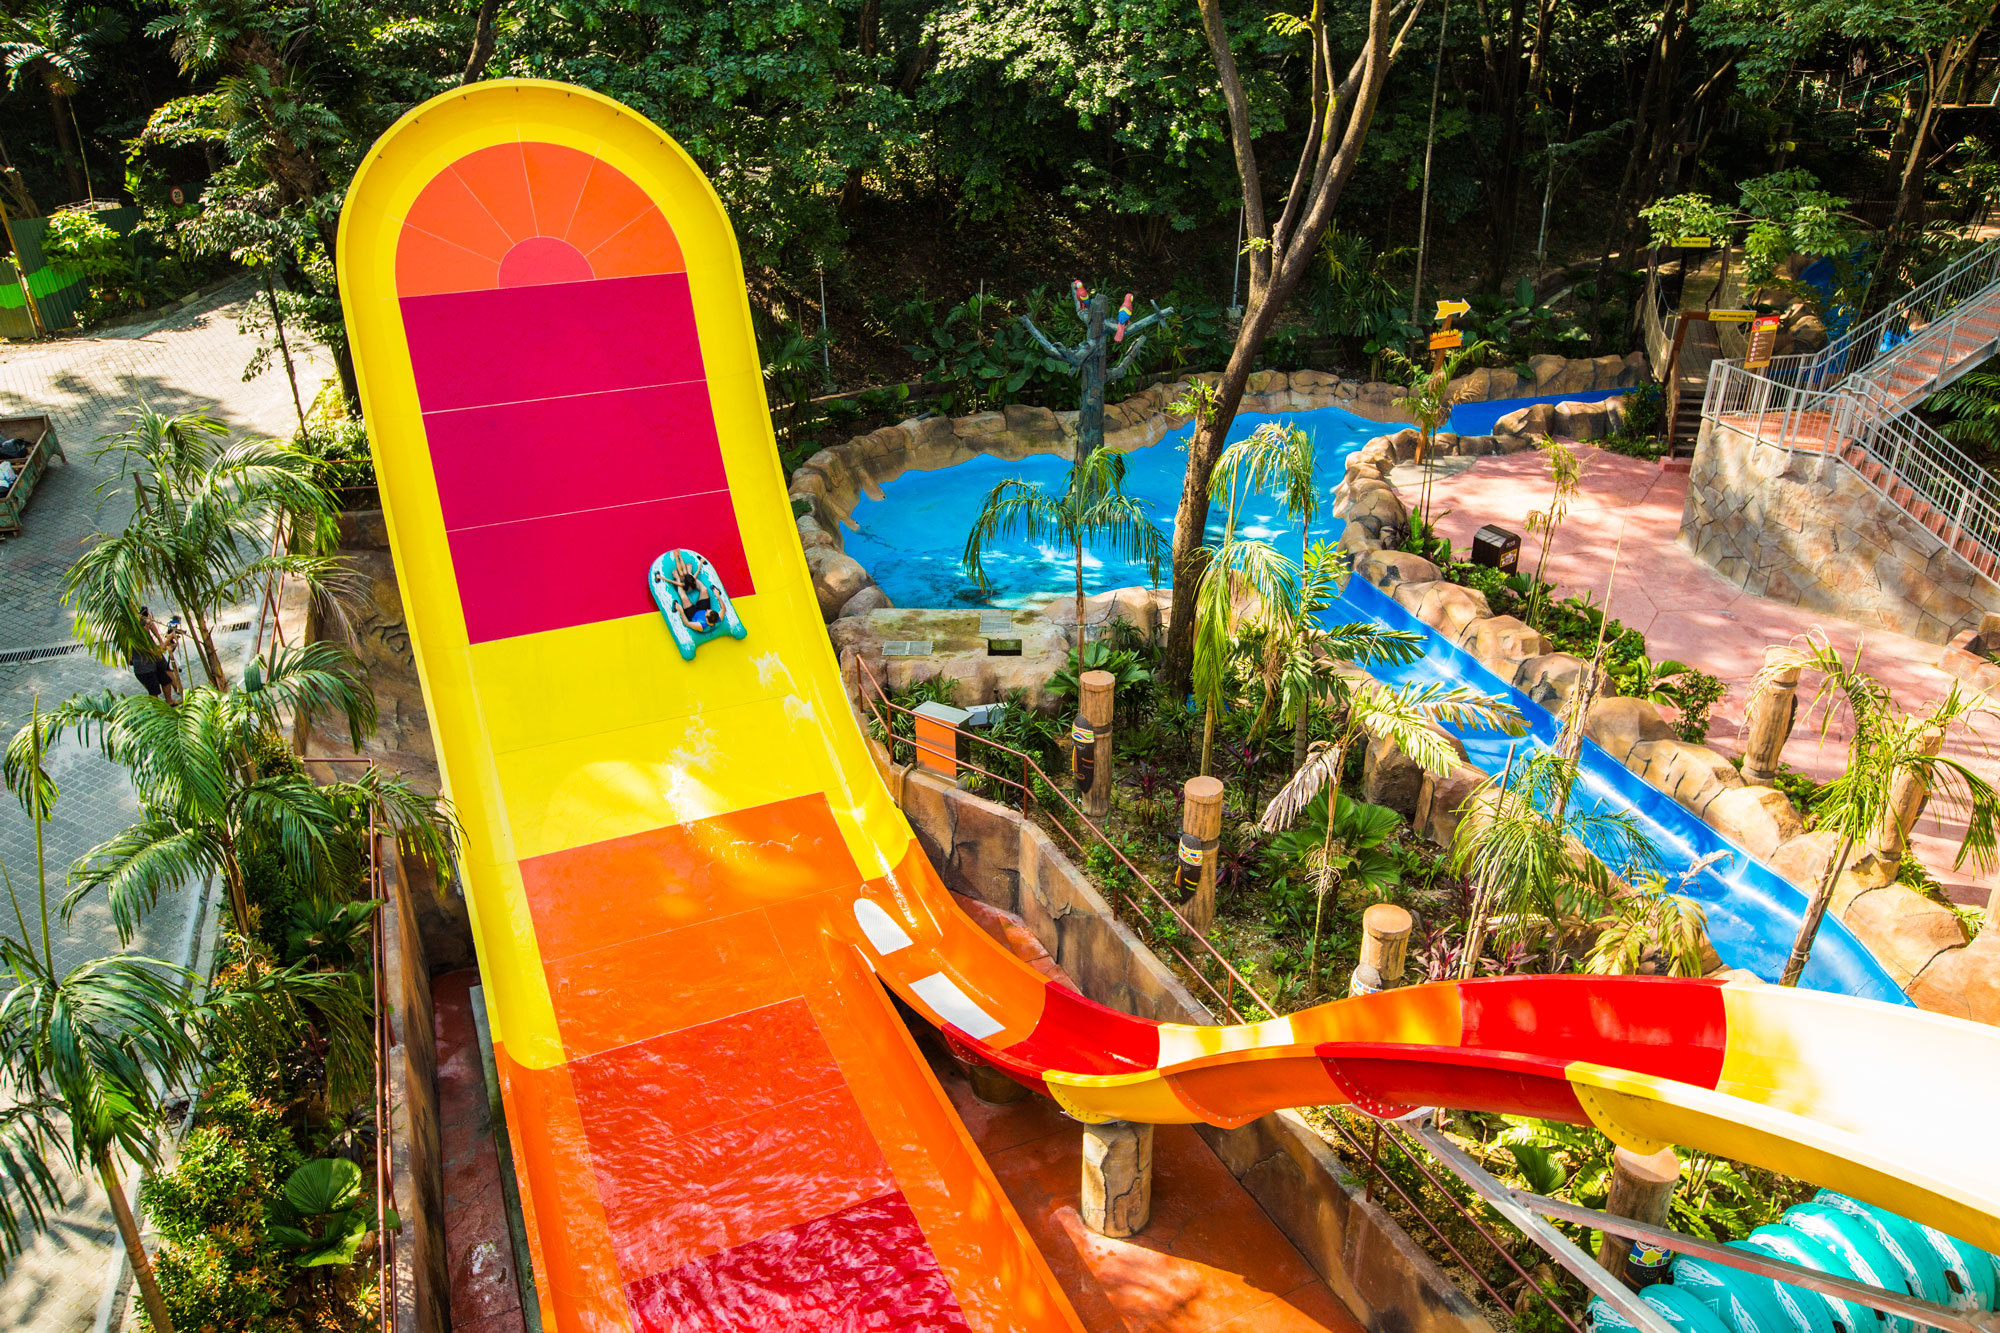 Emily Colombo helped design this Boomerango at the Sunway Lagoon water park in Kuala Lumpur. (Emily Colombo)